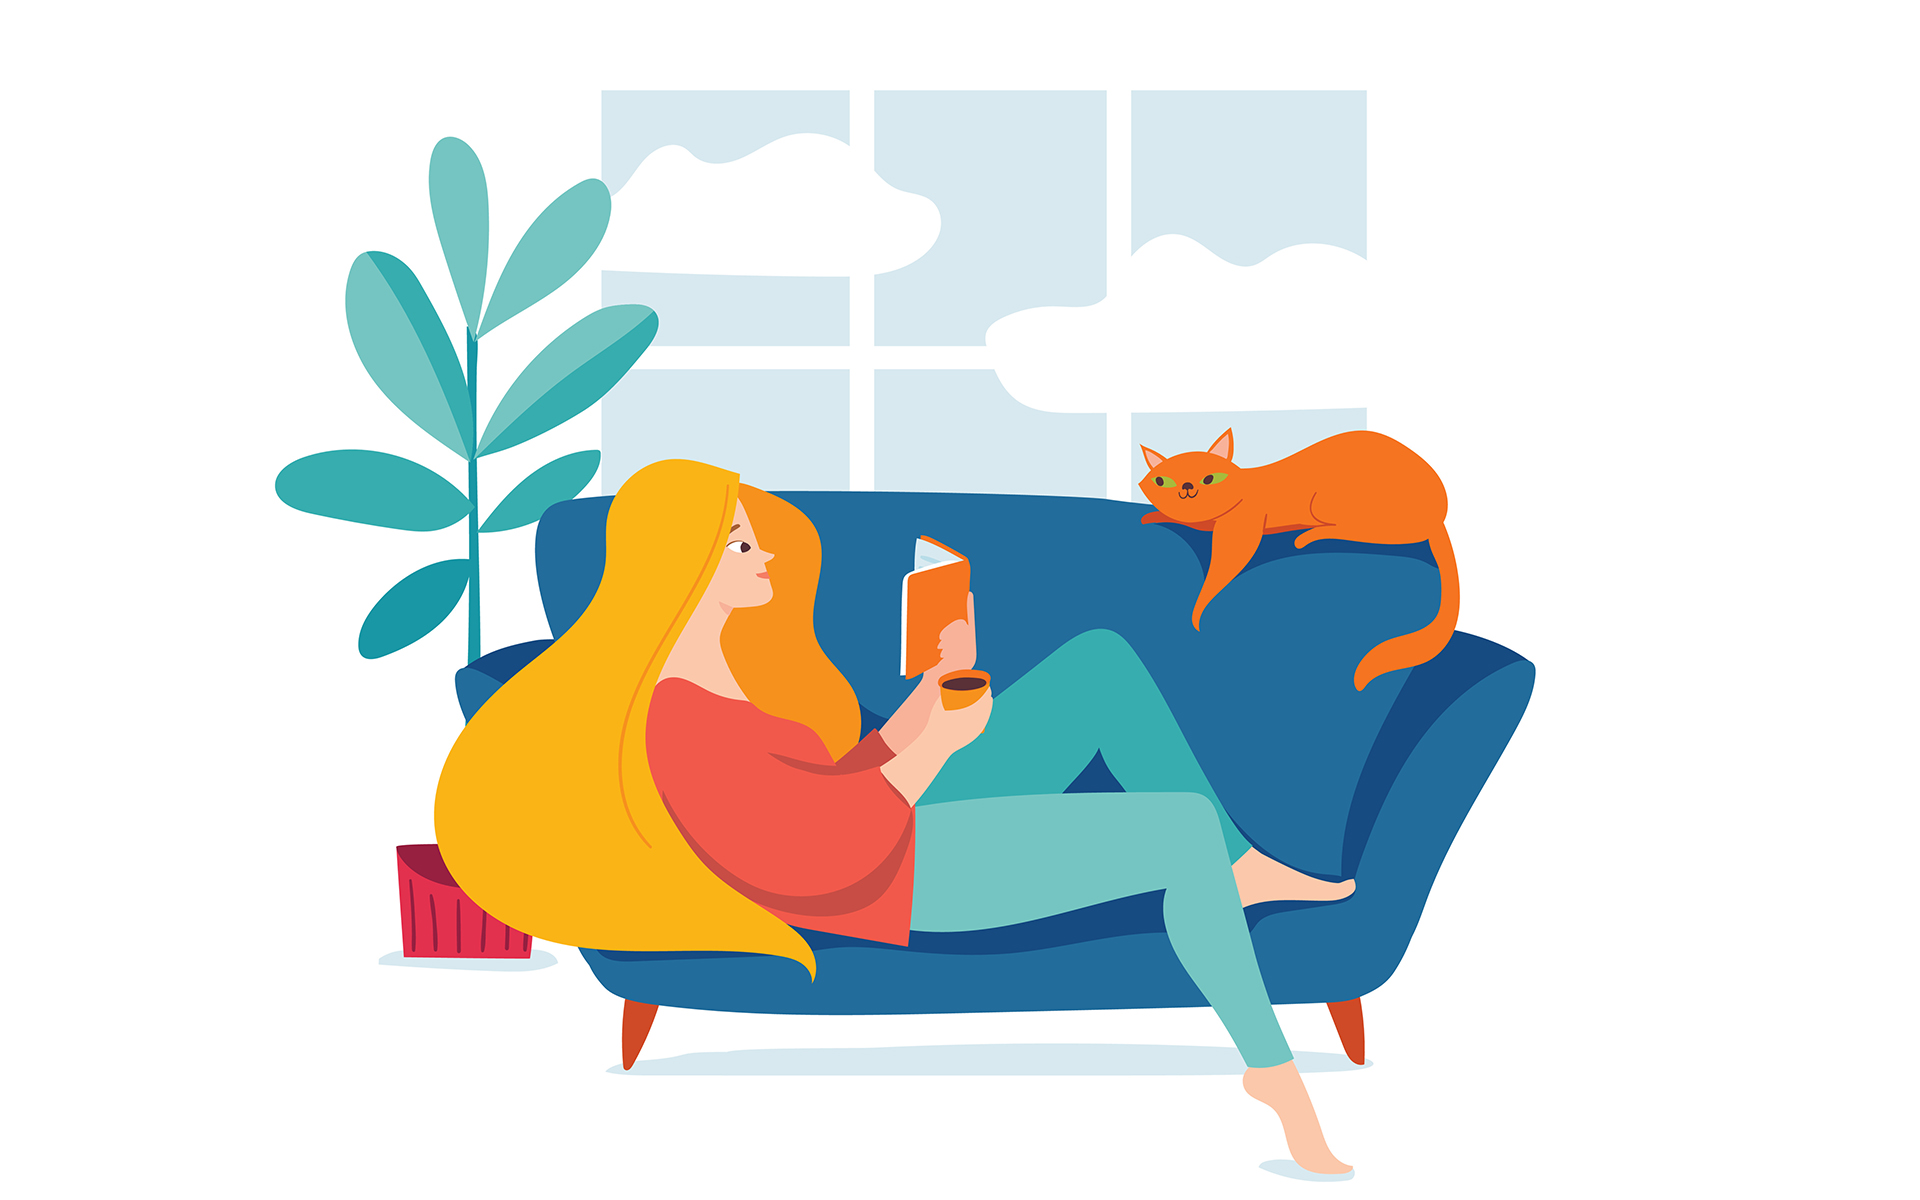 4 Books We're Reading to Replenish Our Energy - Hygge illustration with a woman reading a book